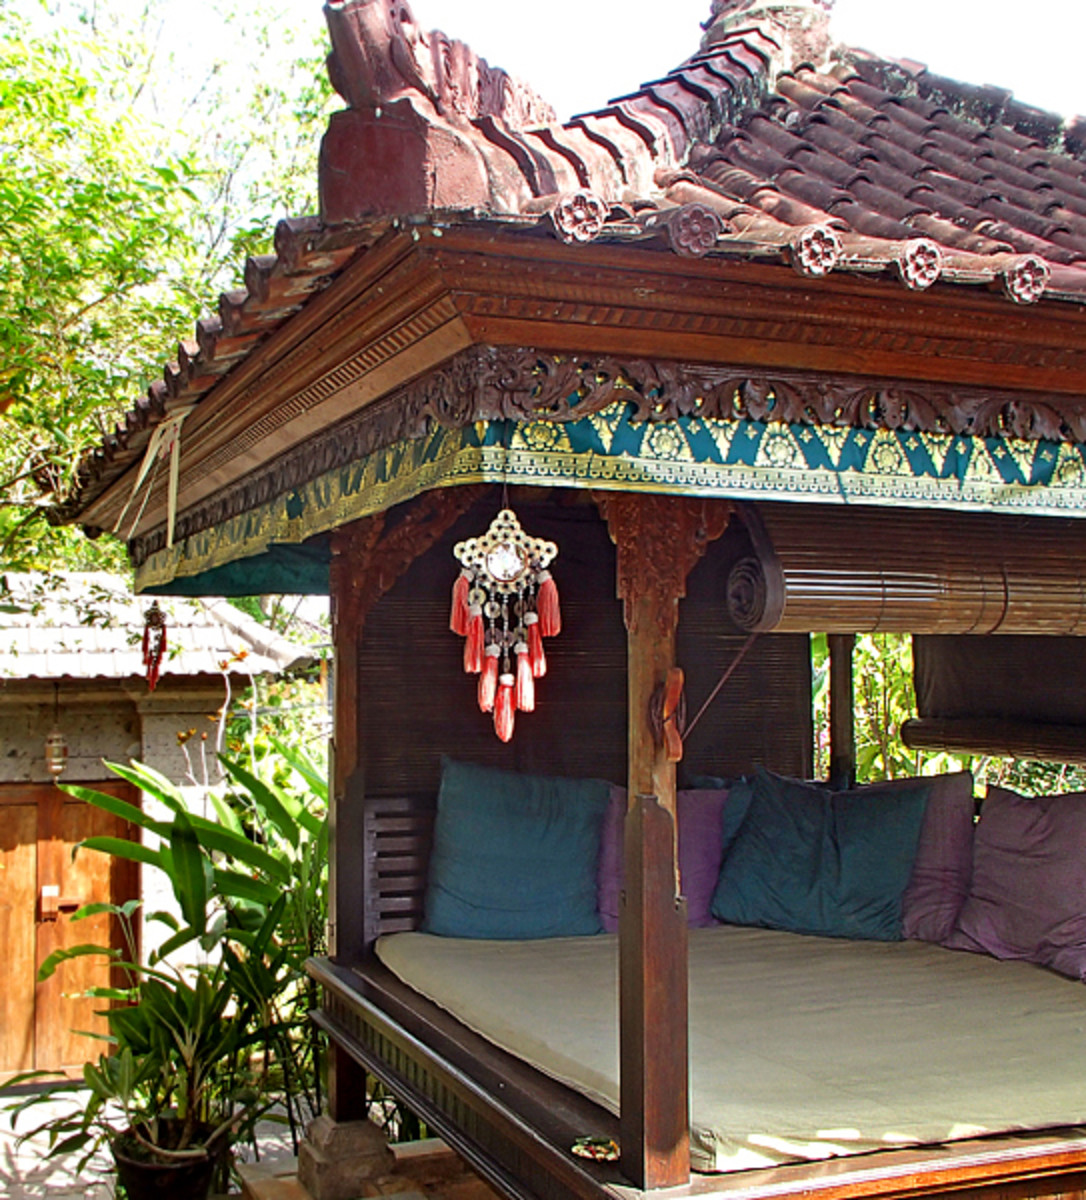 Above: A typical bale in a Balinese garden.